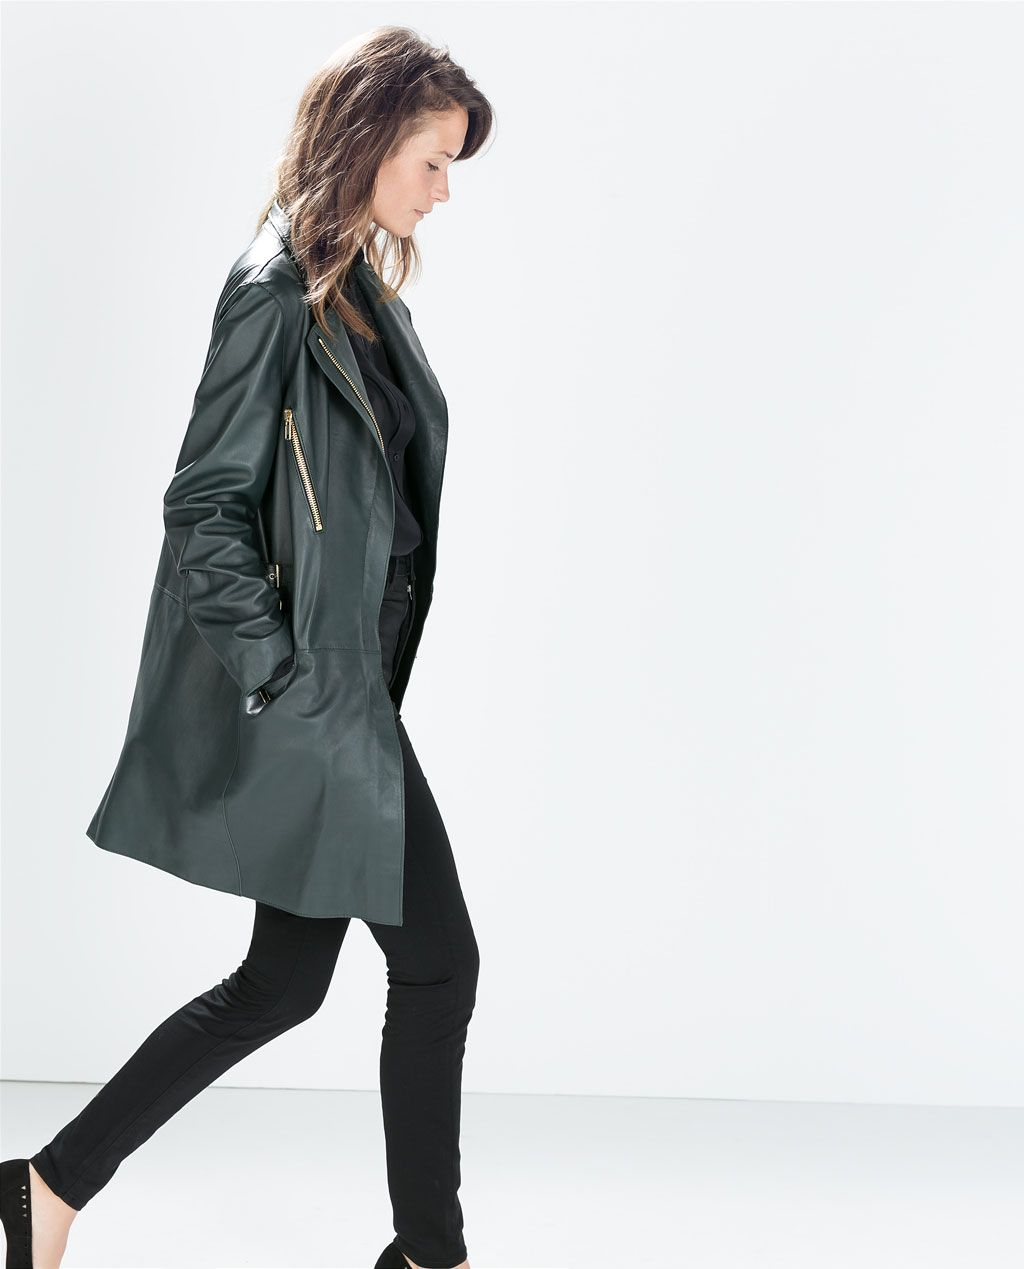 Catalogo Zara Leather Coat With Zips From Zara Fashion Catalogo Zara Zara